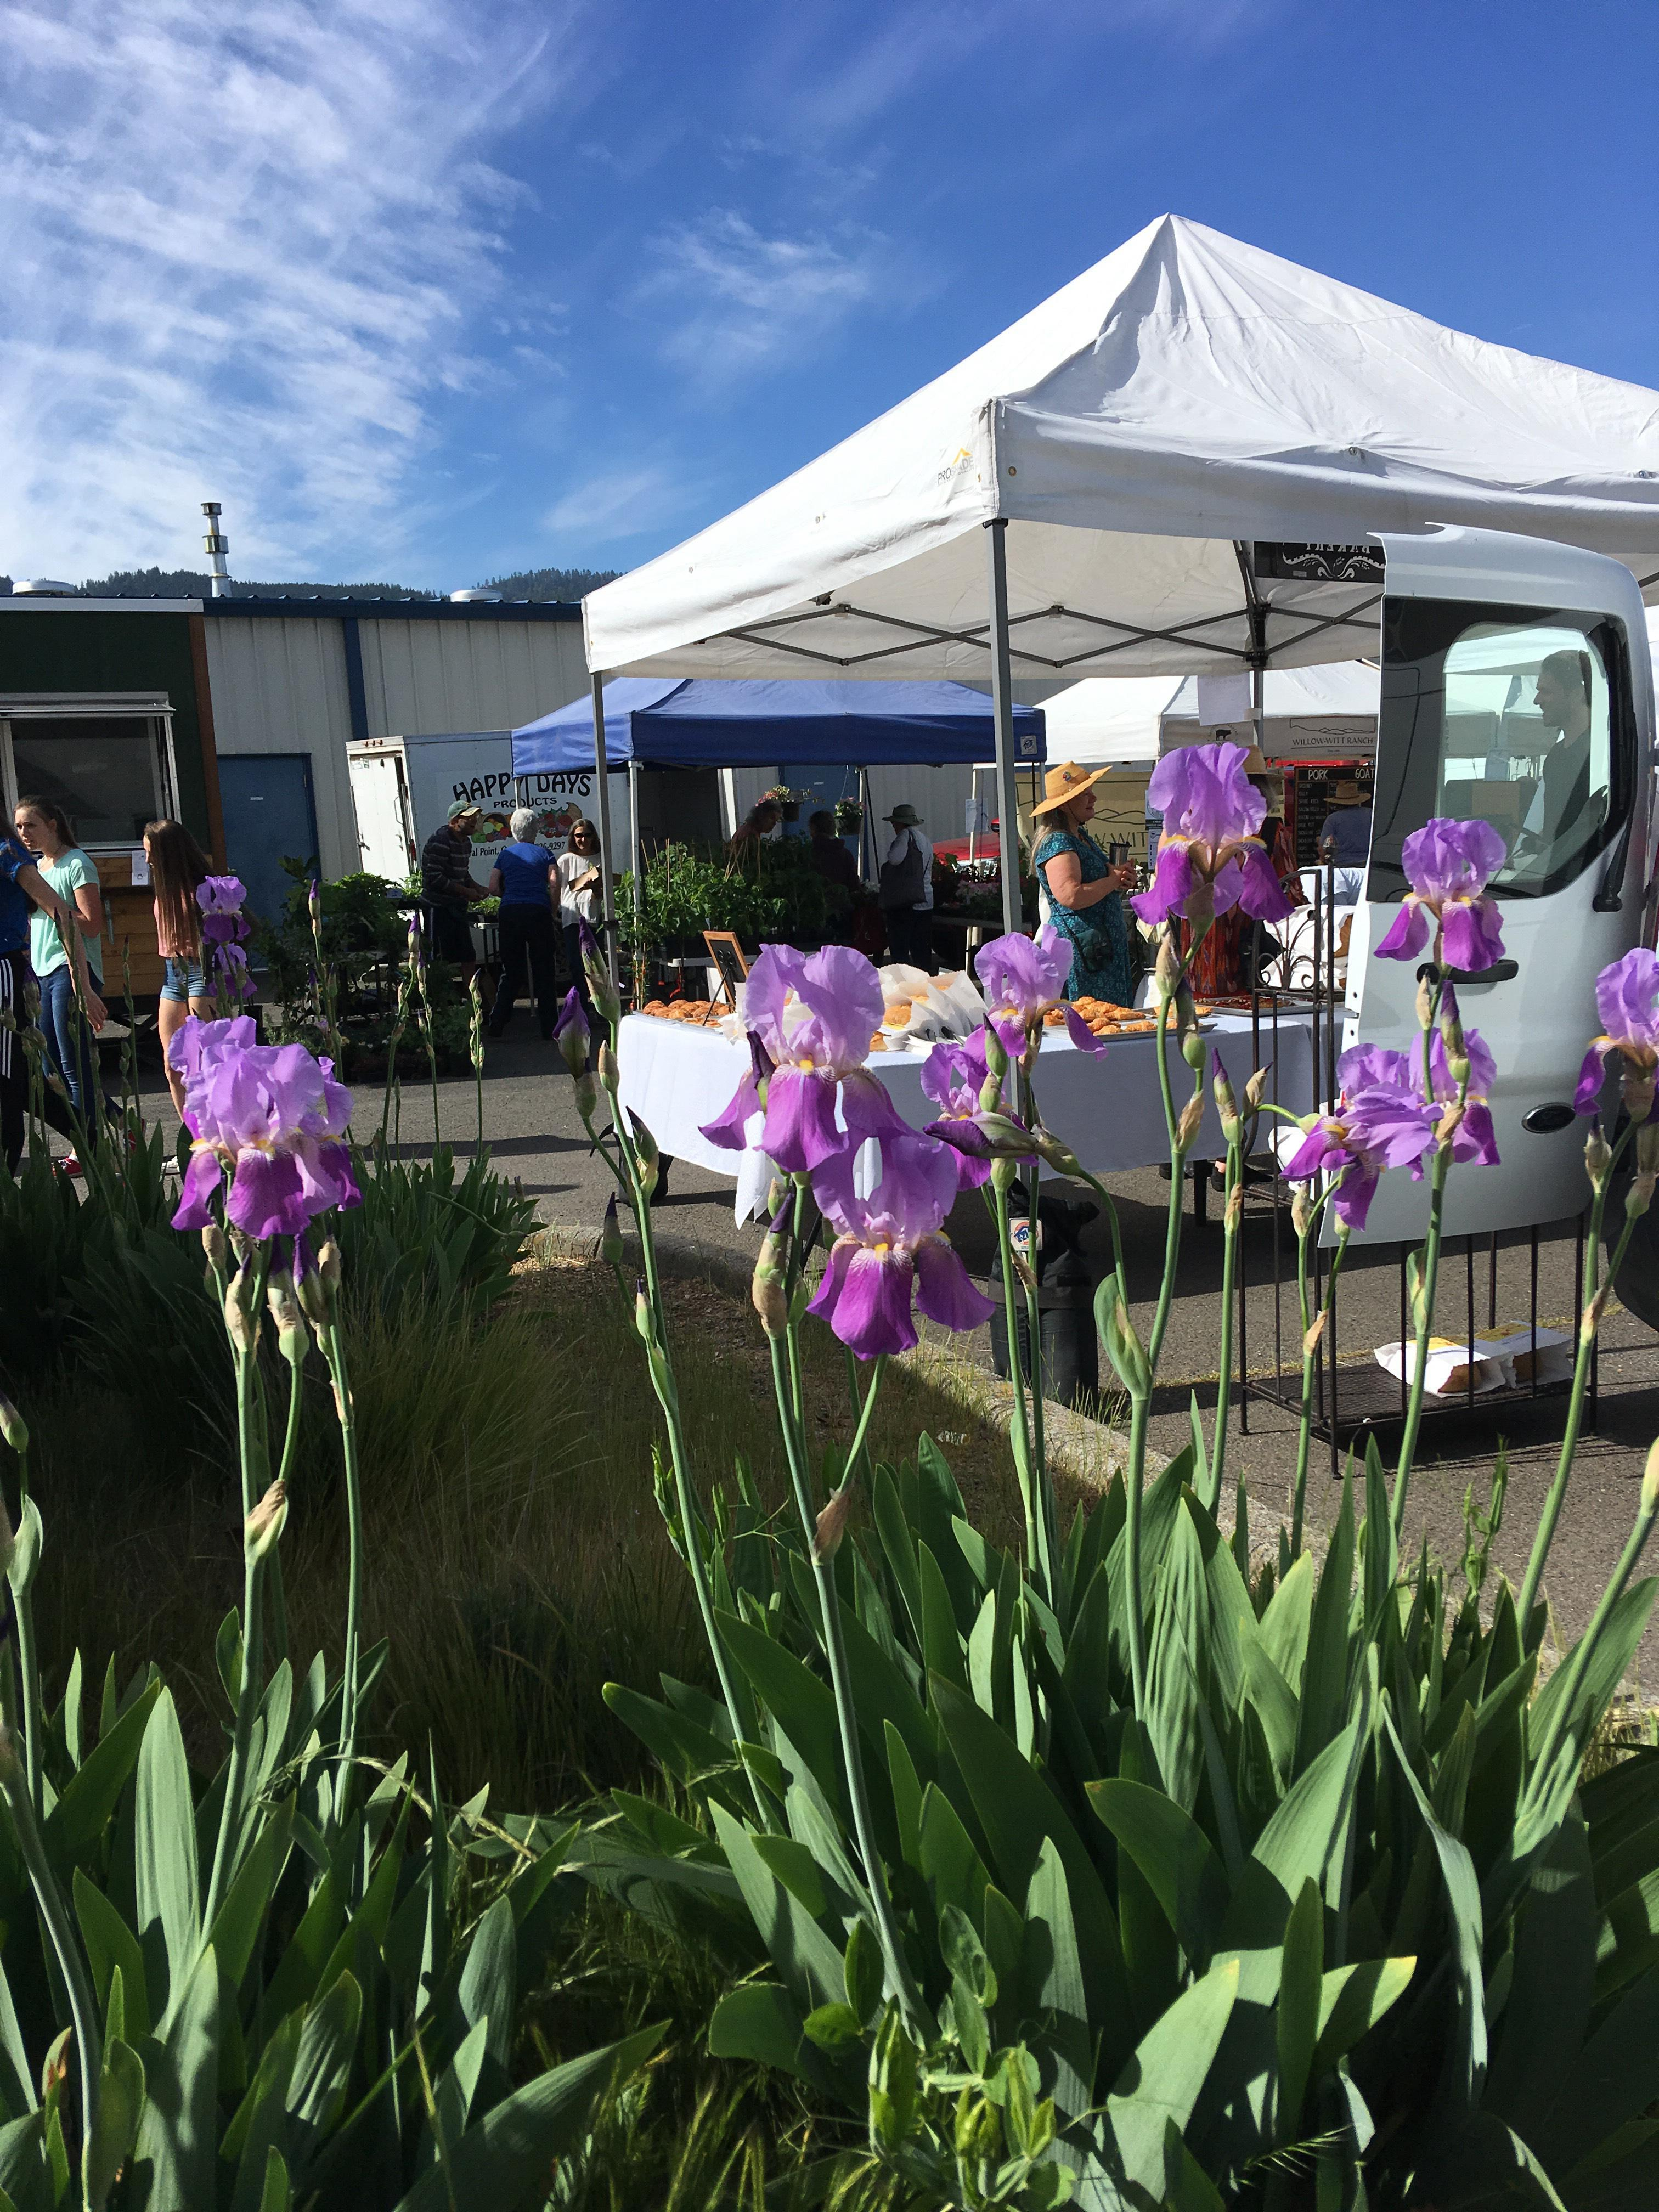 Karen Hiller took this photo of iris growing at growers market site at the Ashland Armory.